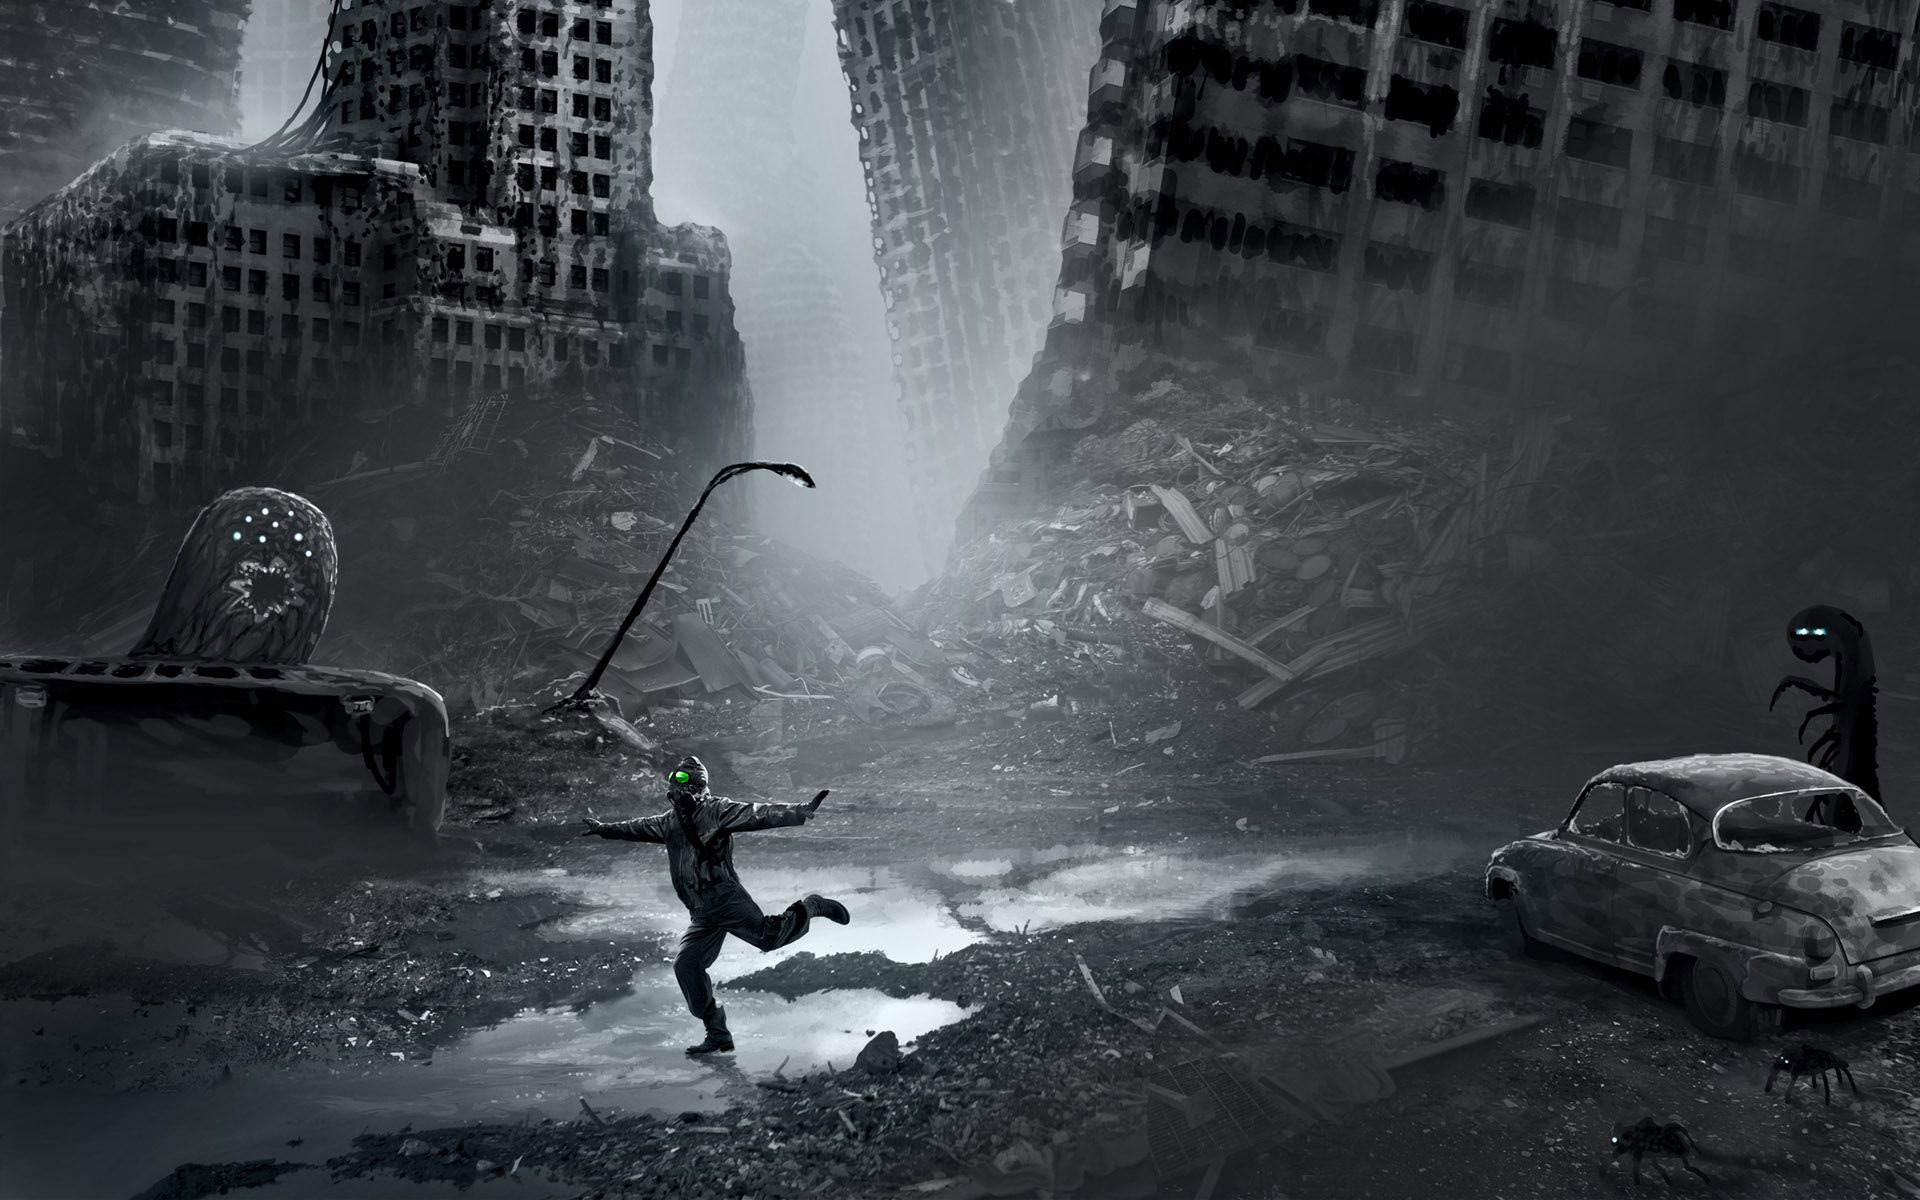 Romantically Apocalyptic wallpaper 17999 1920x1200